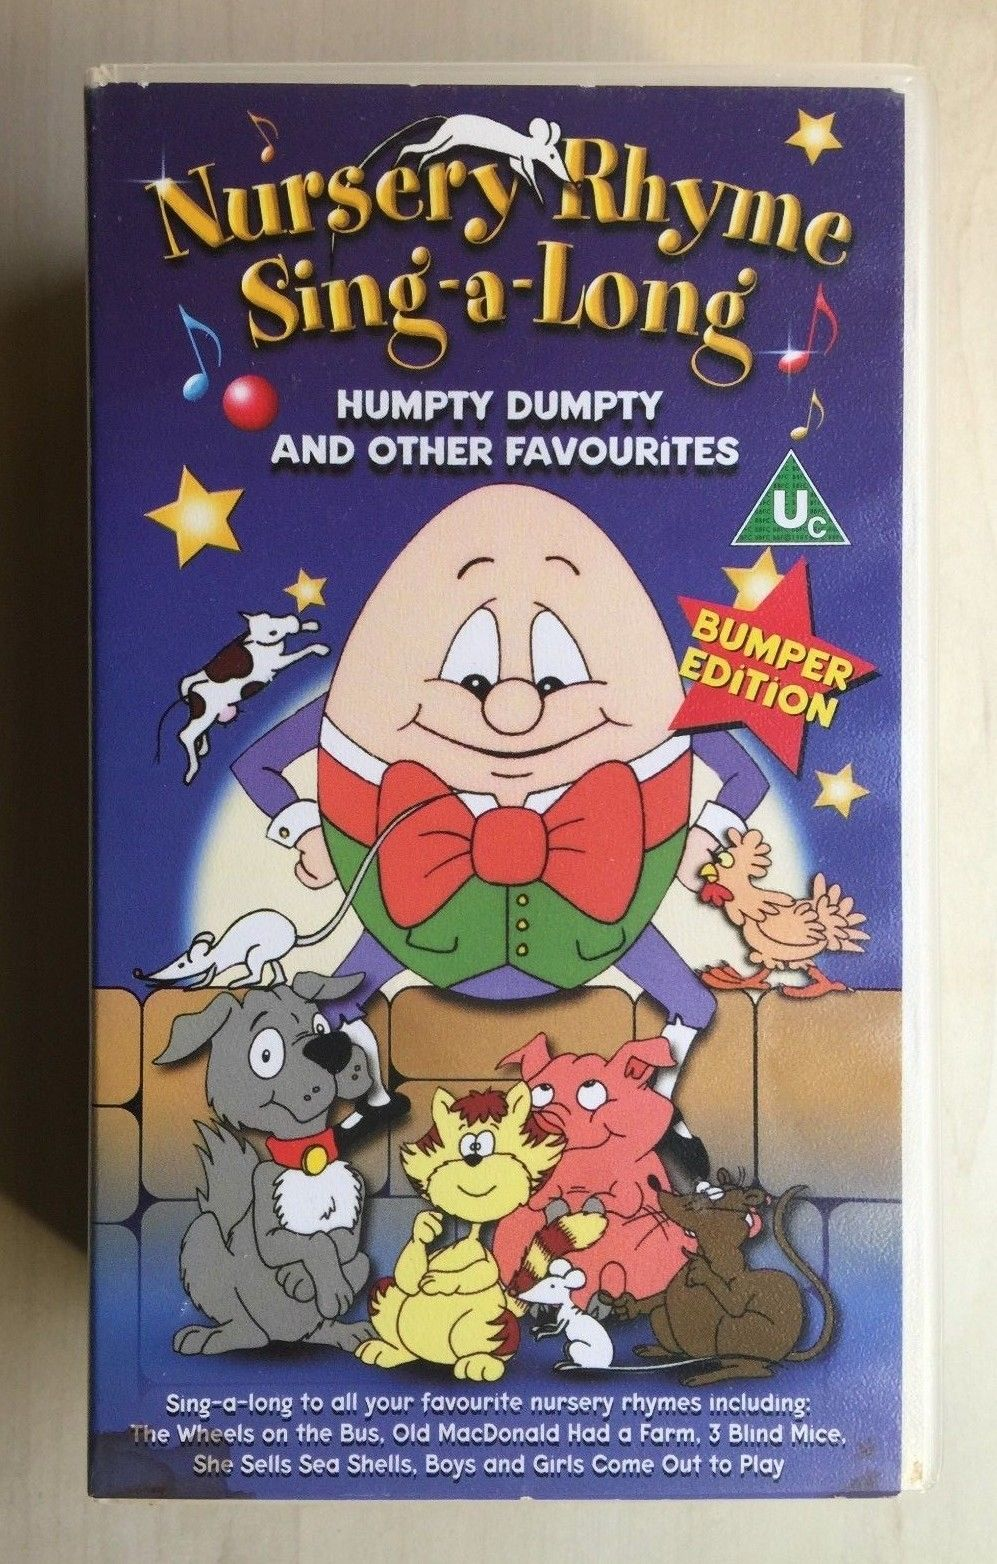 Nursery Rhyme Sing A Long Humpty Dumpty And Other Favourites